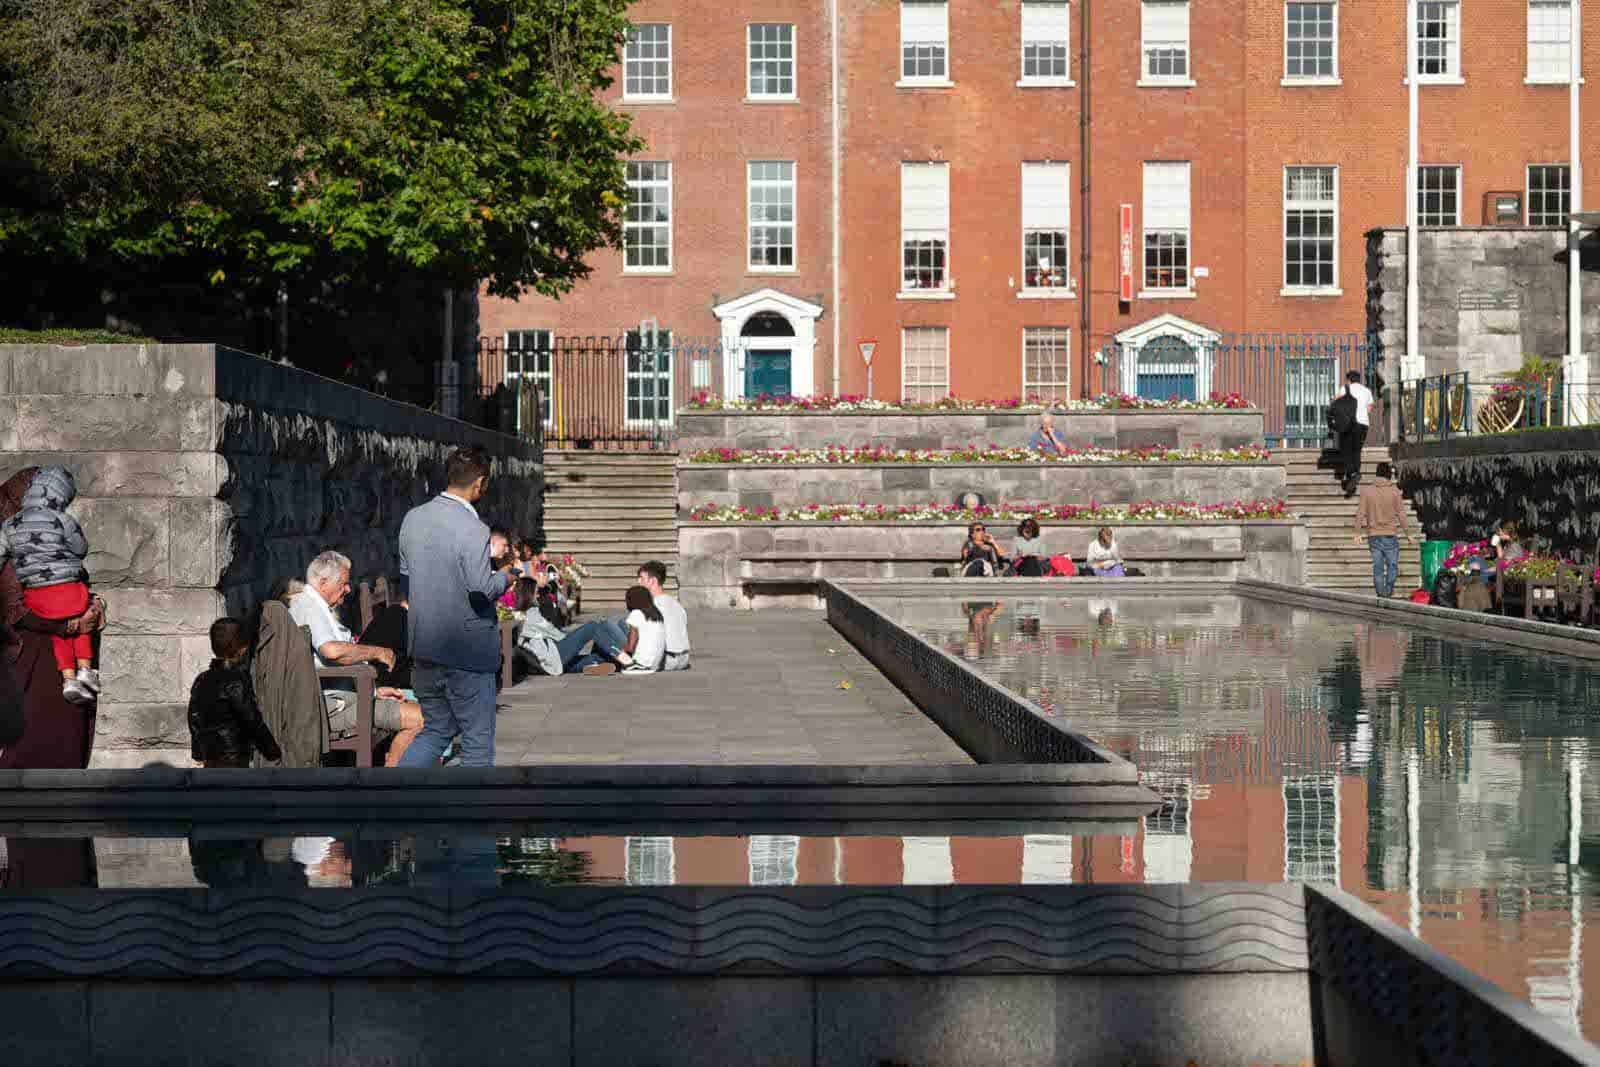 THE-GARDEN-OF-REMEMBRANCE-PARNELL-SQUARE-IN-DUBLIN-155902-1